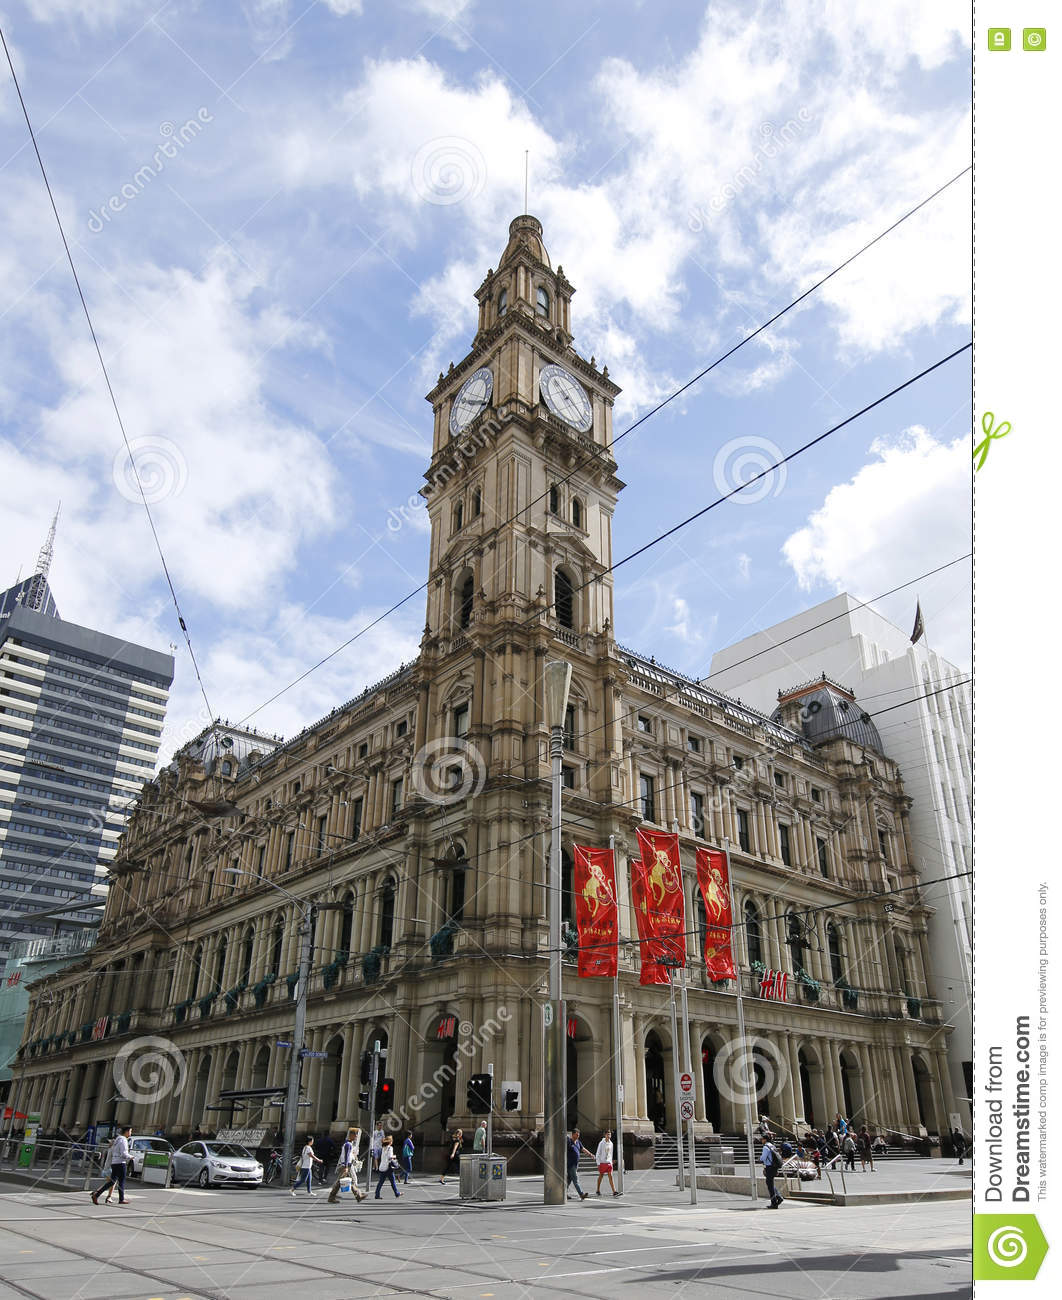 H&M H&M stores in Melbourne - Opening hours, locations and phone numbers Here you can find all the H&M stores in Melbourne. To access the details of the store (location, opening hours, website and current offers) click on the location or the store name.